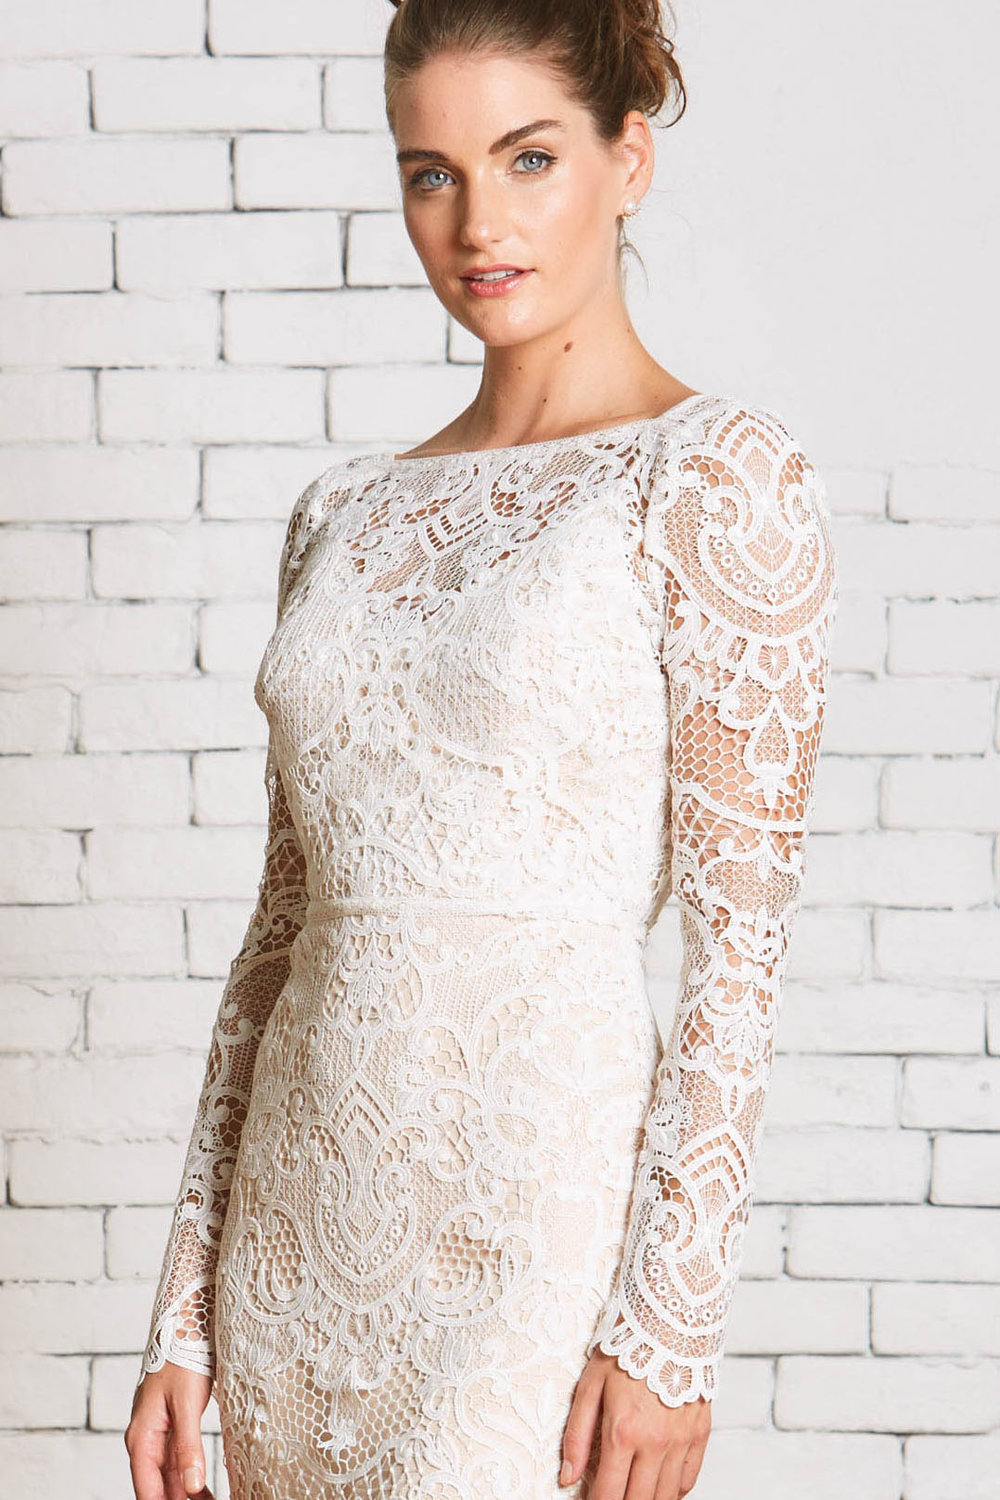 7a.Rebecca_Schoneveld_Freya_top_Bold_Lace_Stylish_Bridal_Separates.jpg